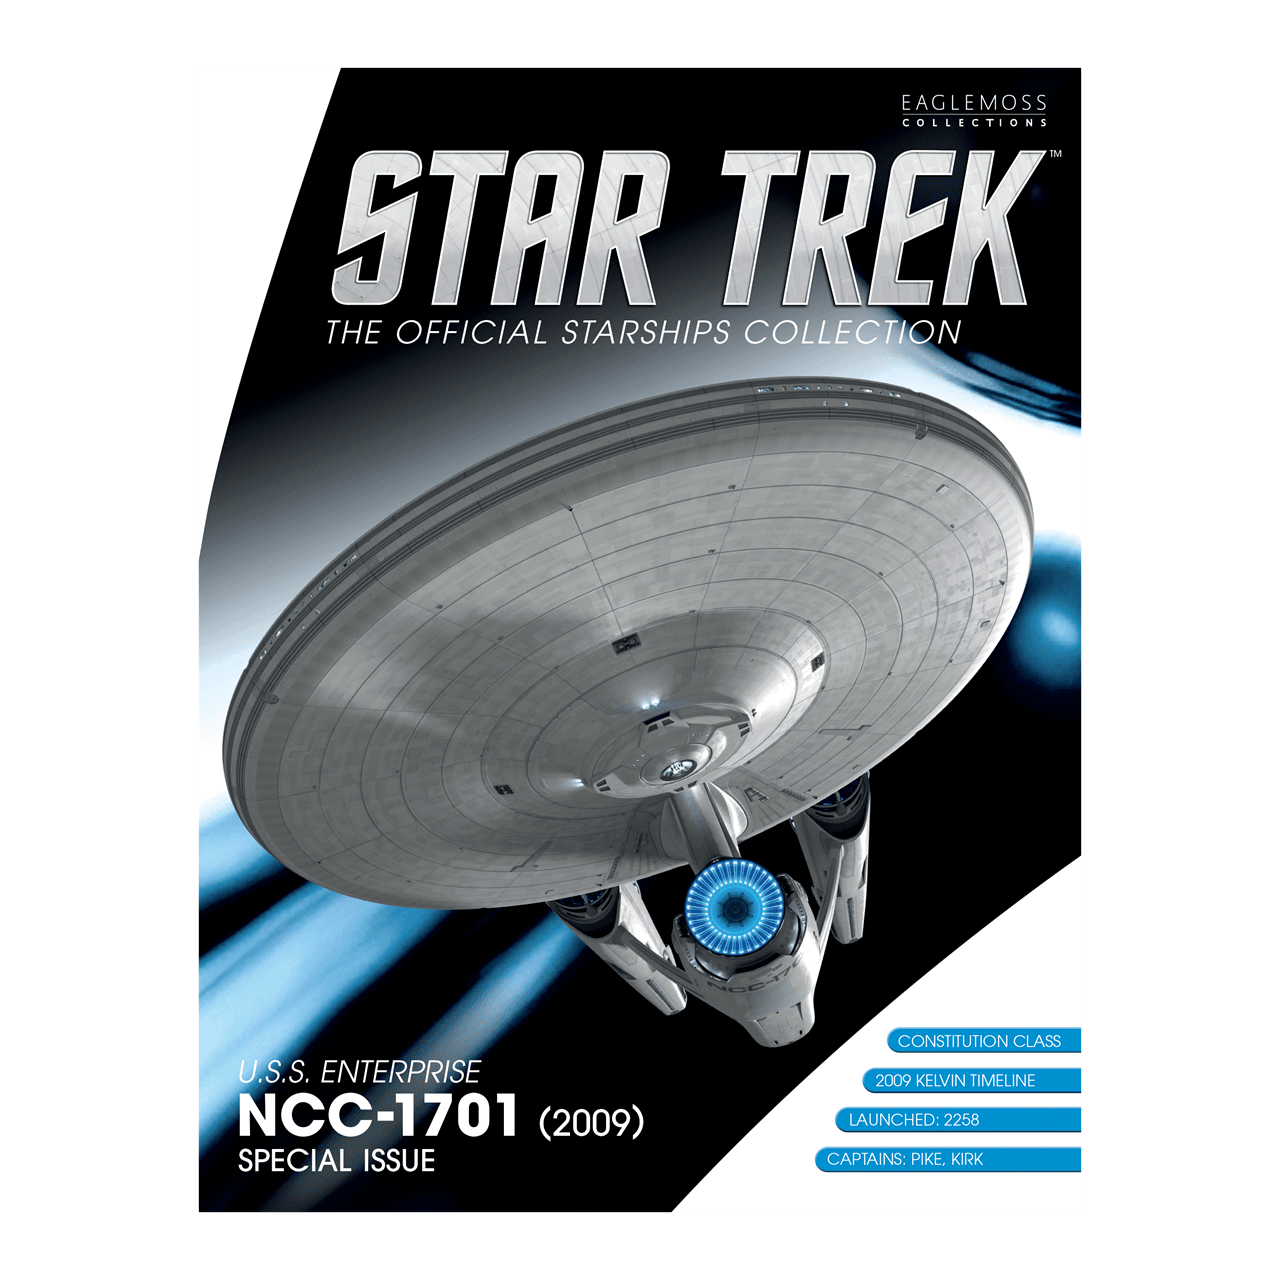 Star Trek: U.S.S. Enterprise (2009) XL Starship Hero Collector - 3